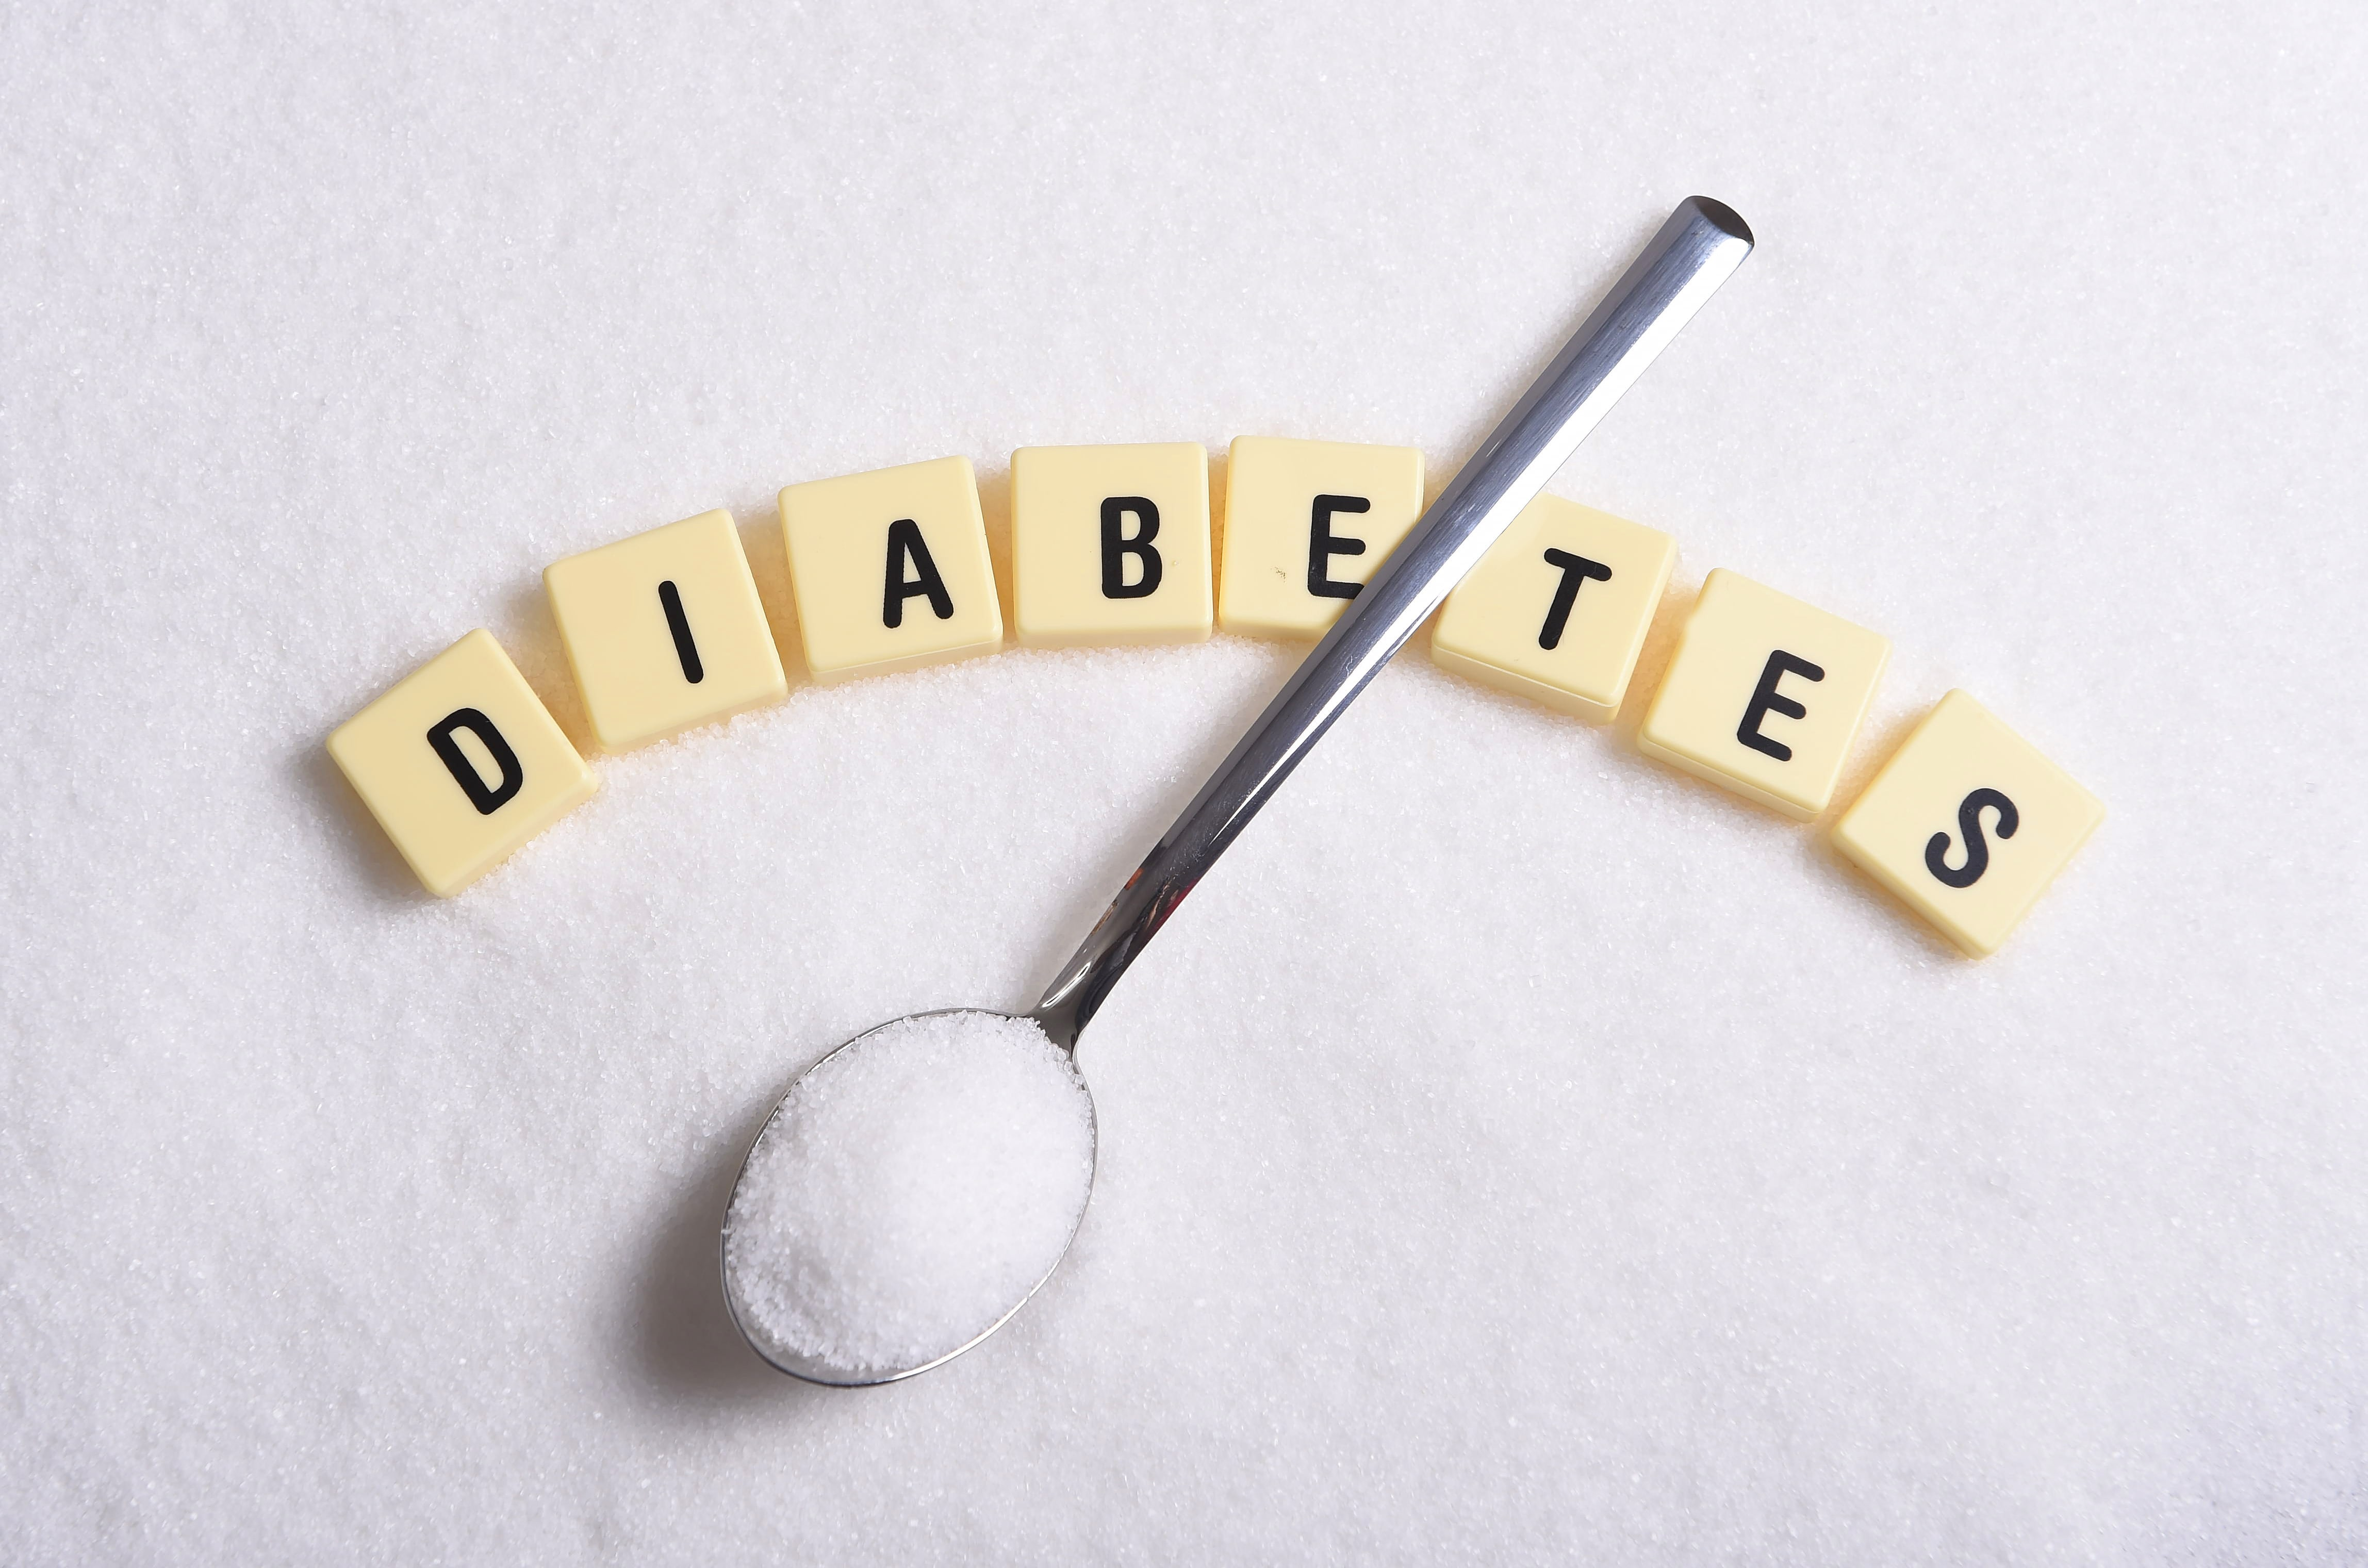 Diabetes difference